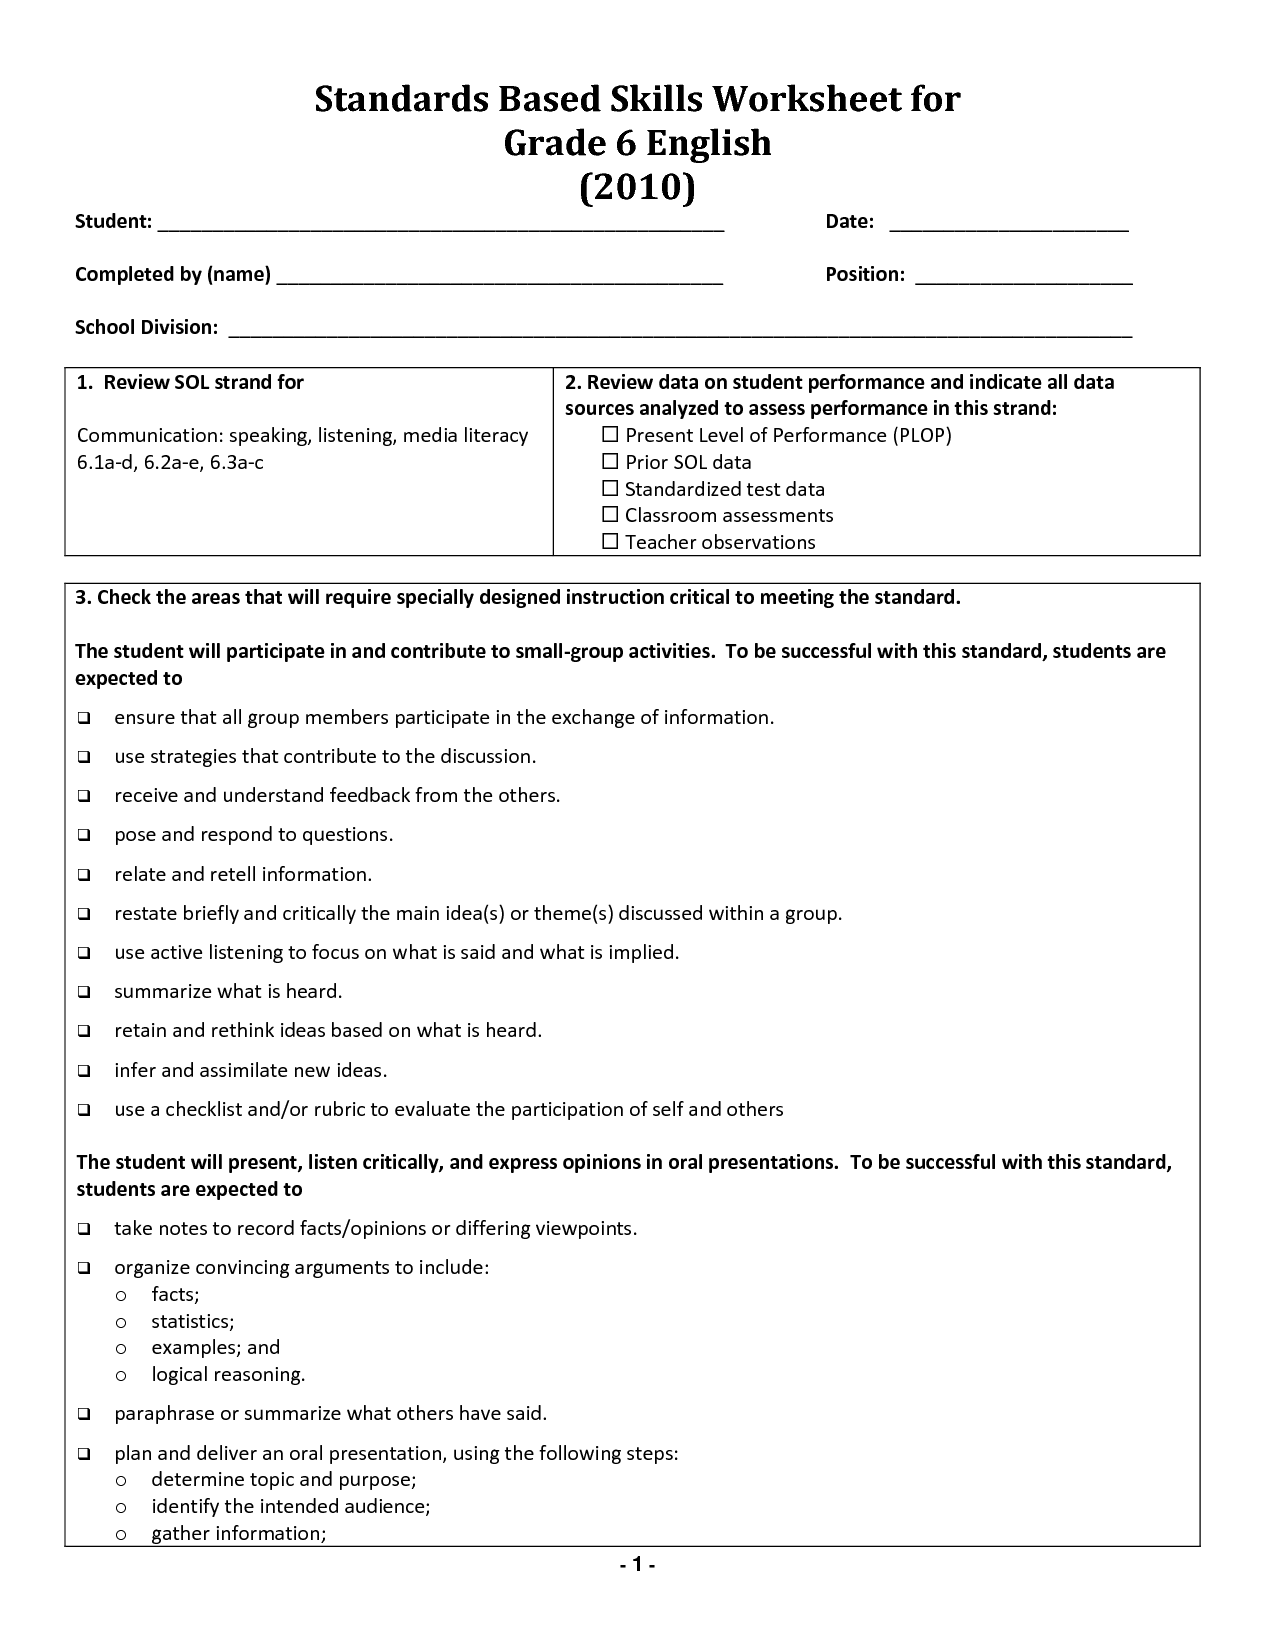 Proper Noun Worksheet 6th Grade